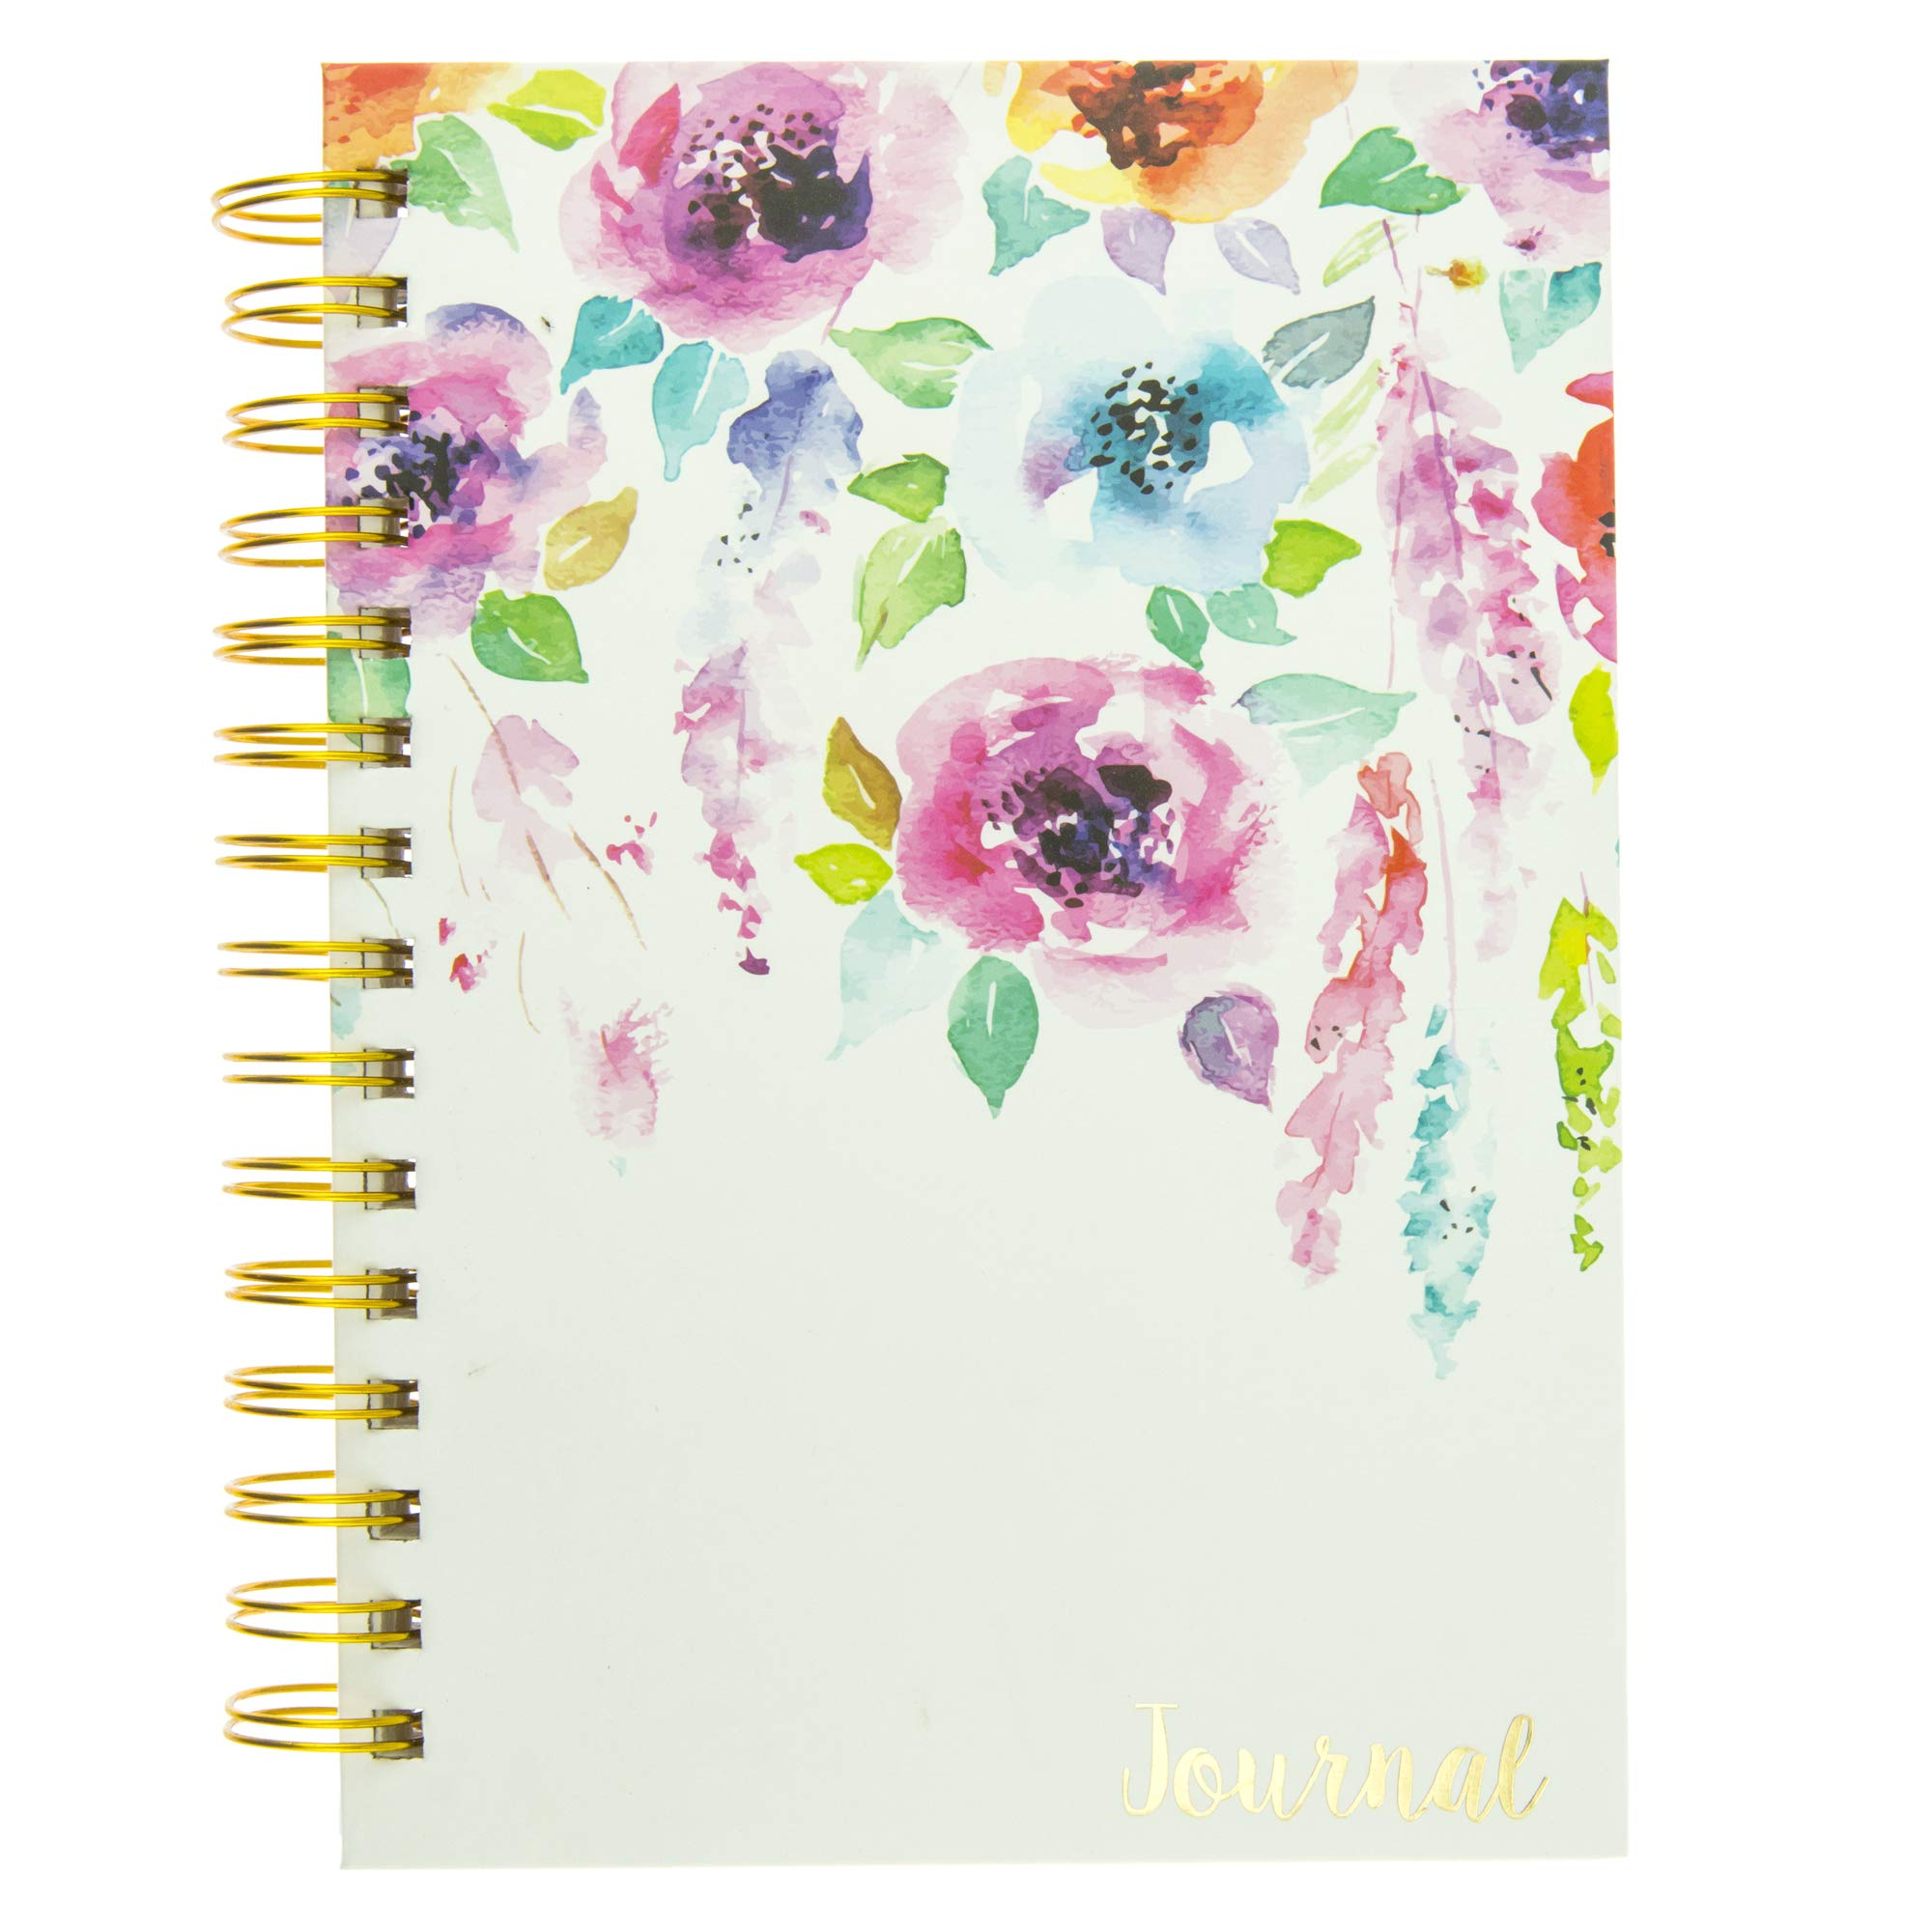 Graphique Hanging Flowers Hard Bound Journal w/Watercolor Flowers on Cover, Beautiful Introspective Journal for Nature Lovers and Gentle Spirits, 160 Ruled Pages, 6.25'' x 8.25'' x 1'' by Graphique